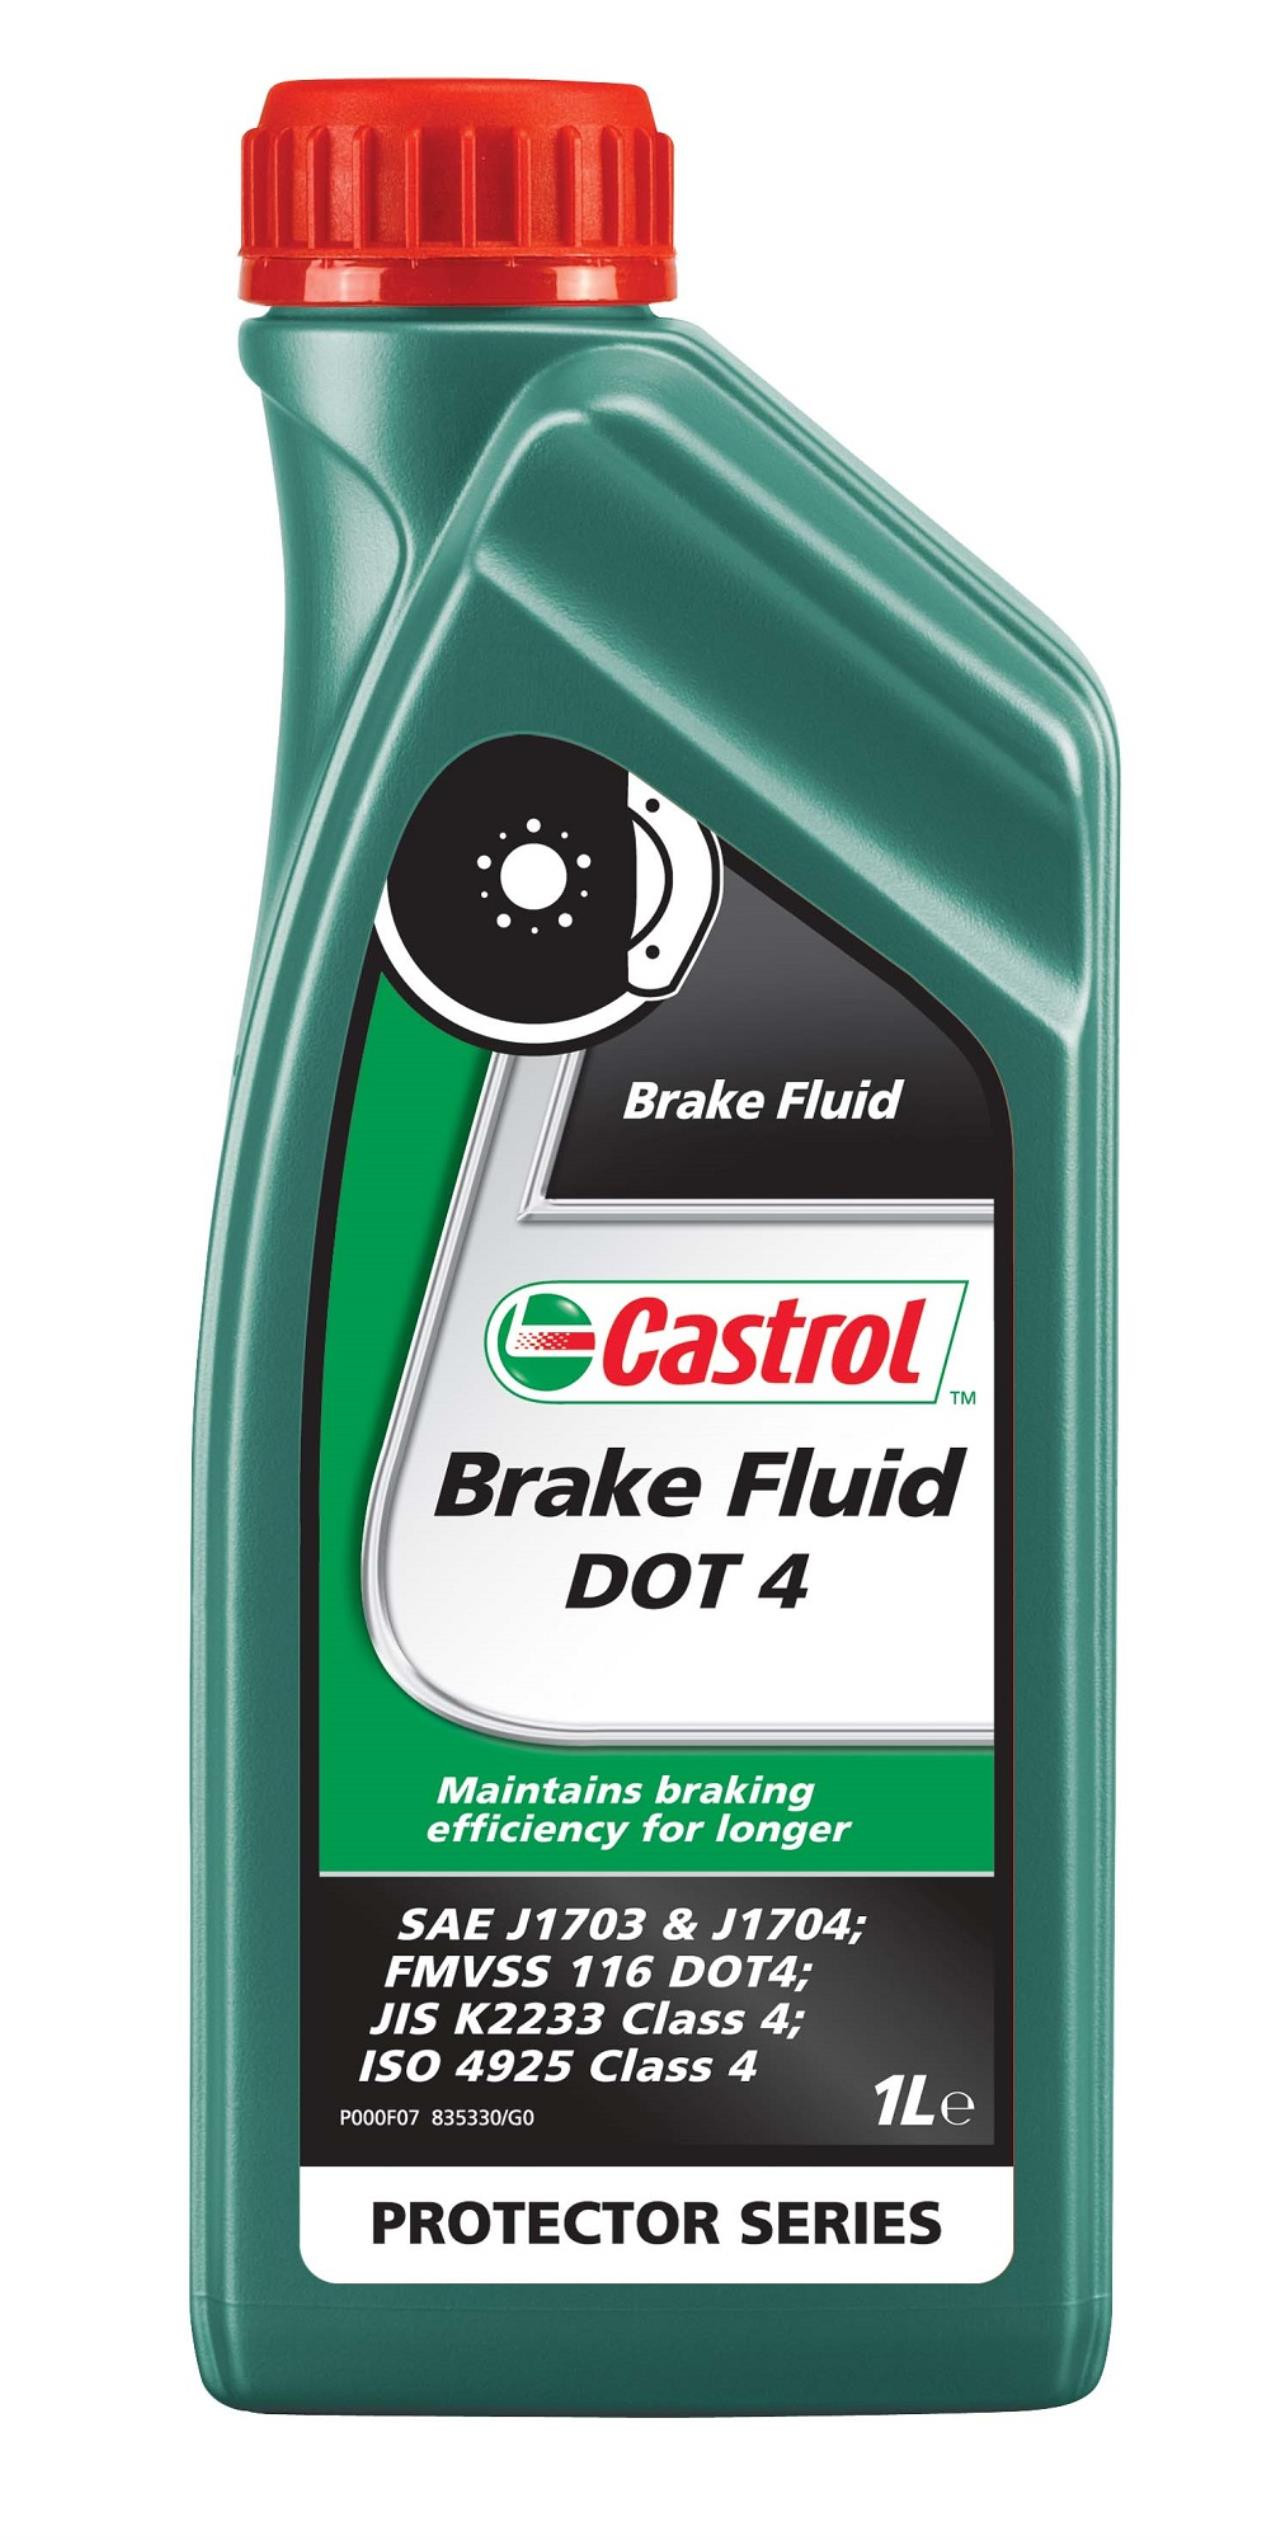 Castrol Brake Fluid Dot 4 1 ltr.